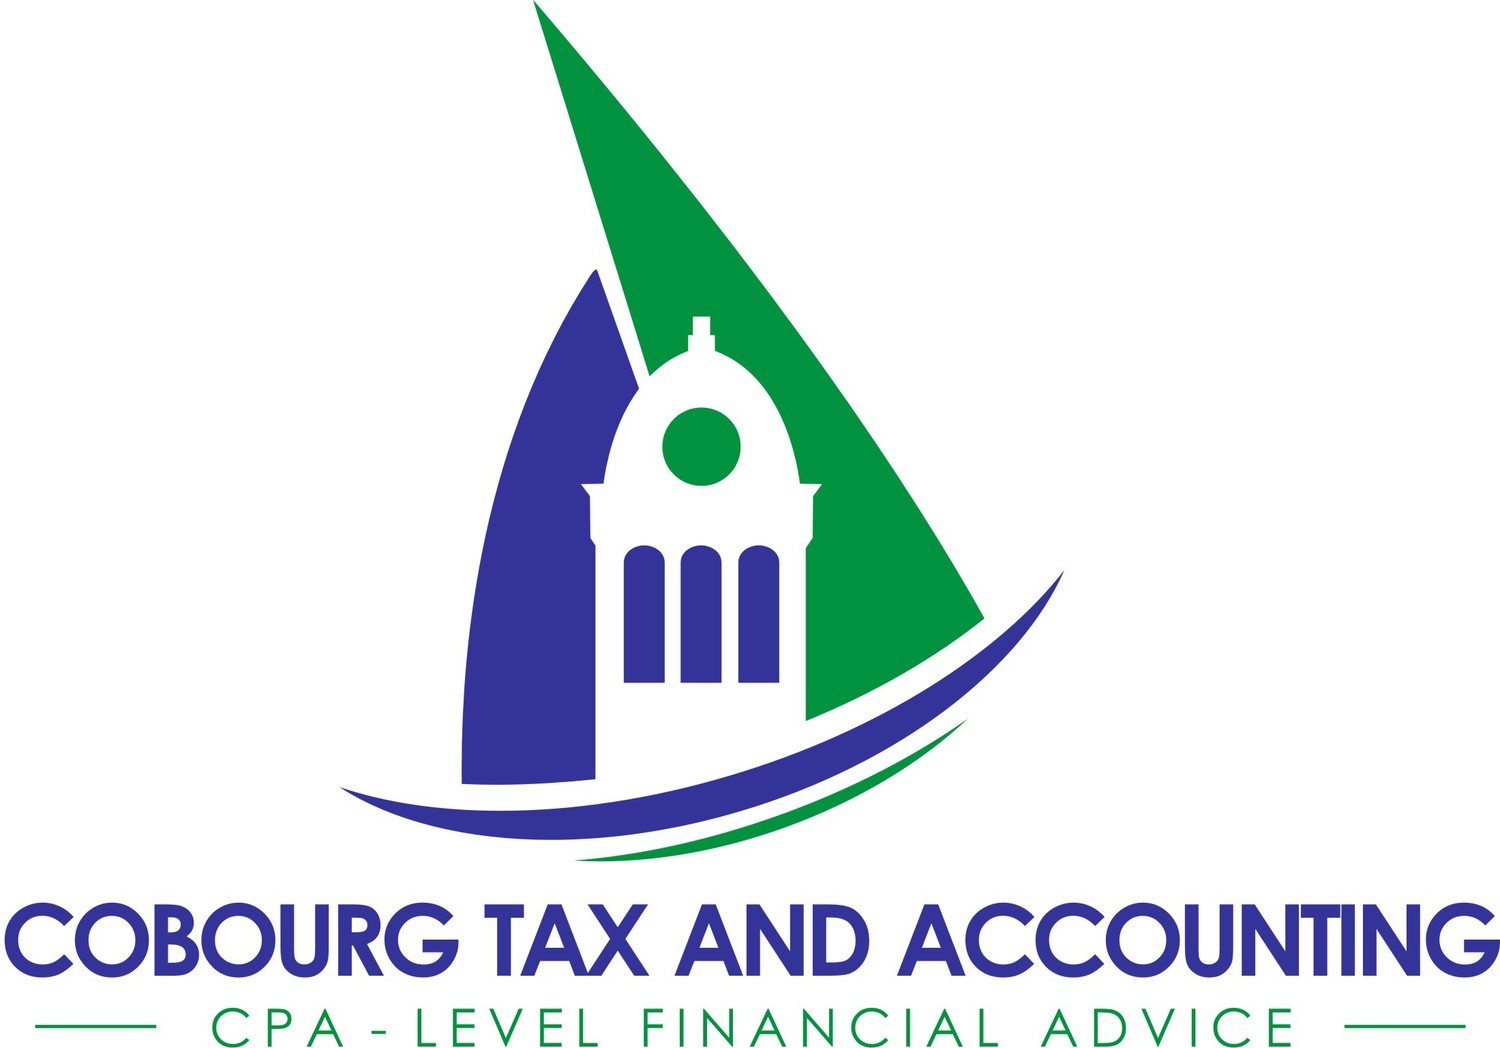 Cobourg Tax and Accounting